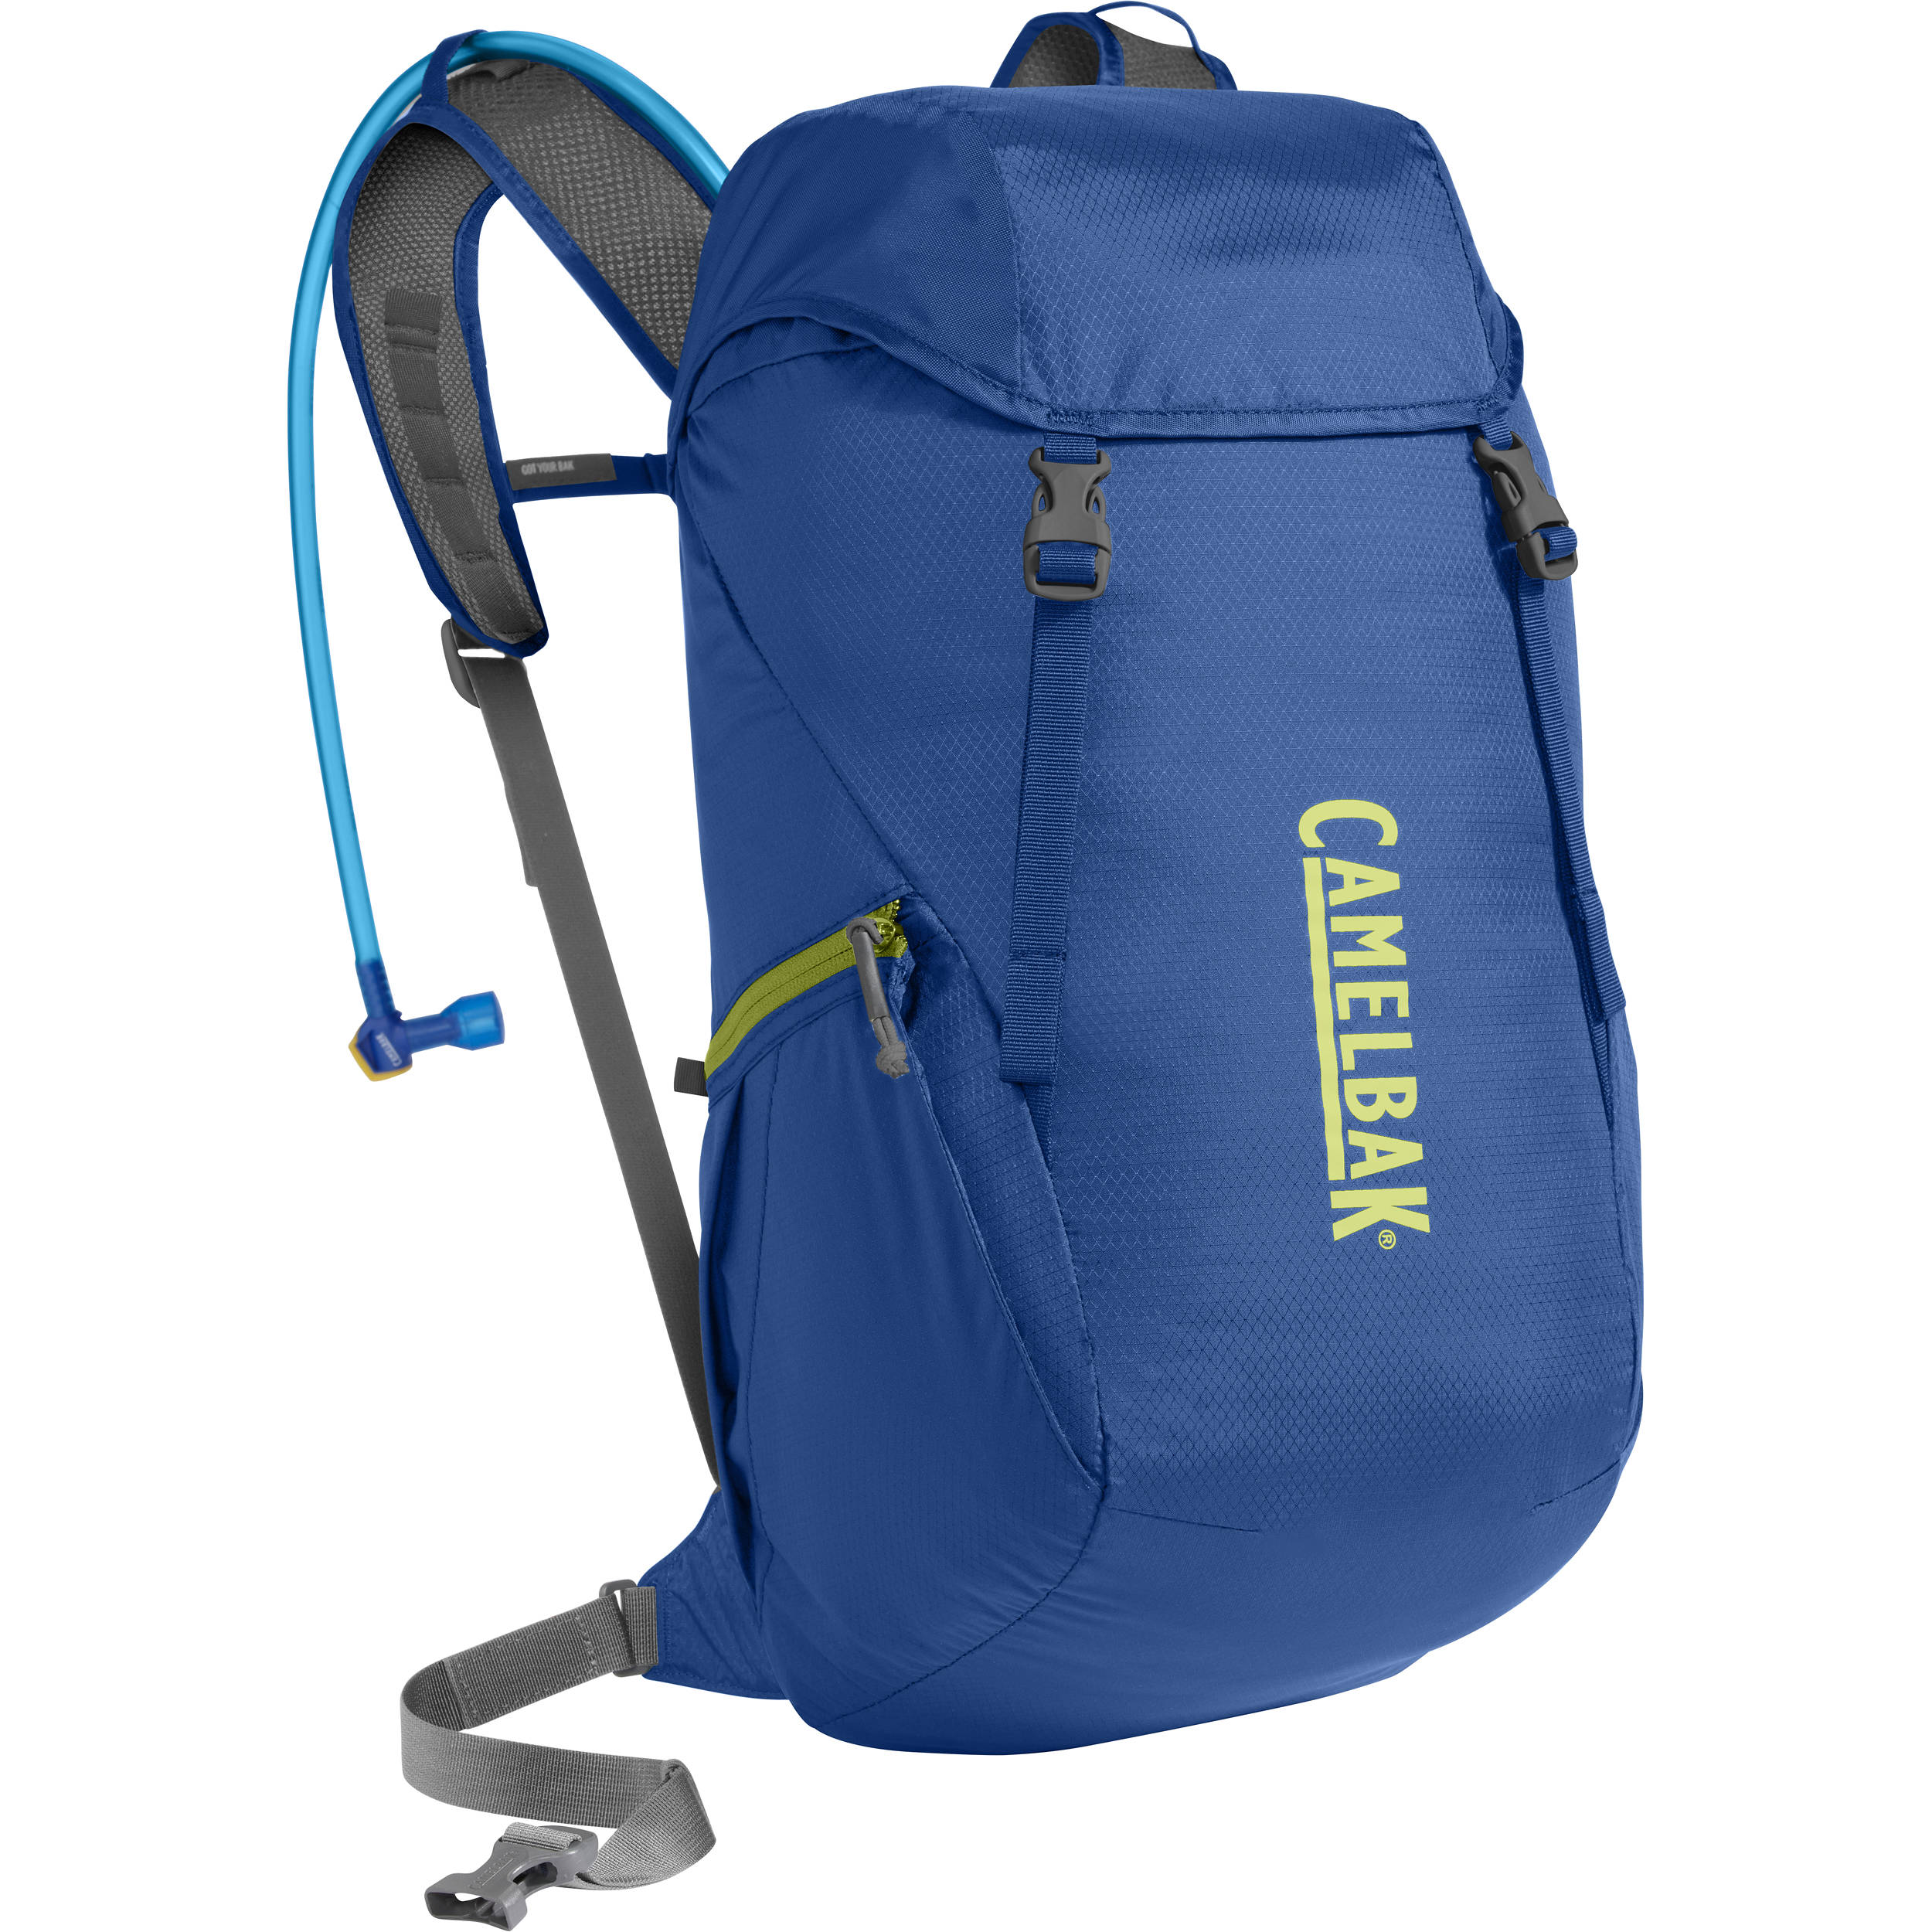 week 2 camelbak Shop from the world's largest selection and best deals for cycling hydration packs  camelbak rogue 85oz hydration pack with 25l bladder,  hot this week.